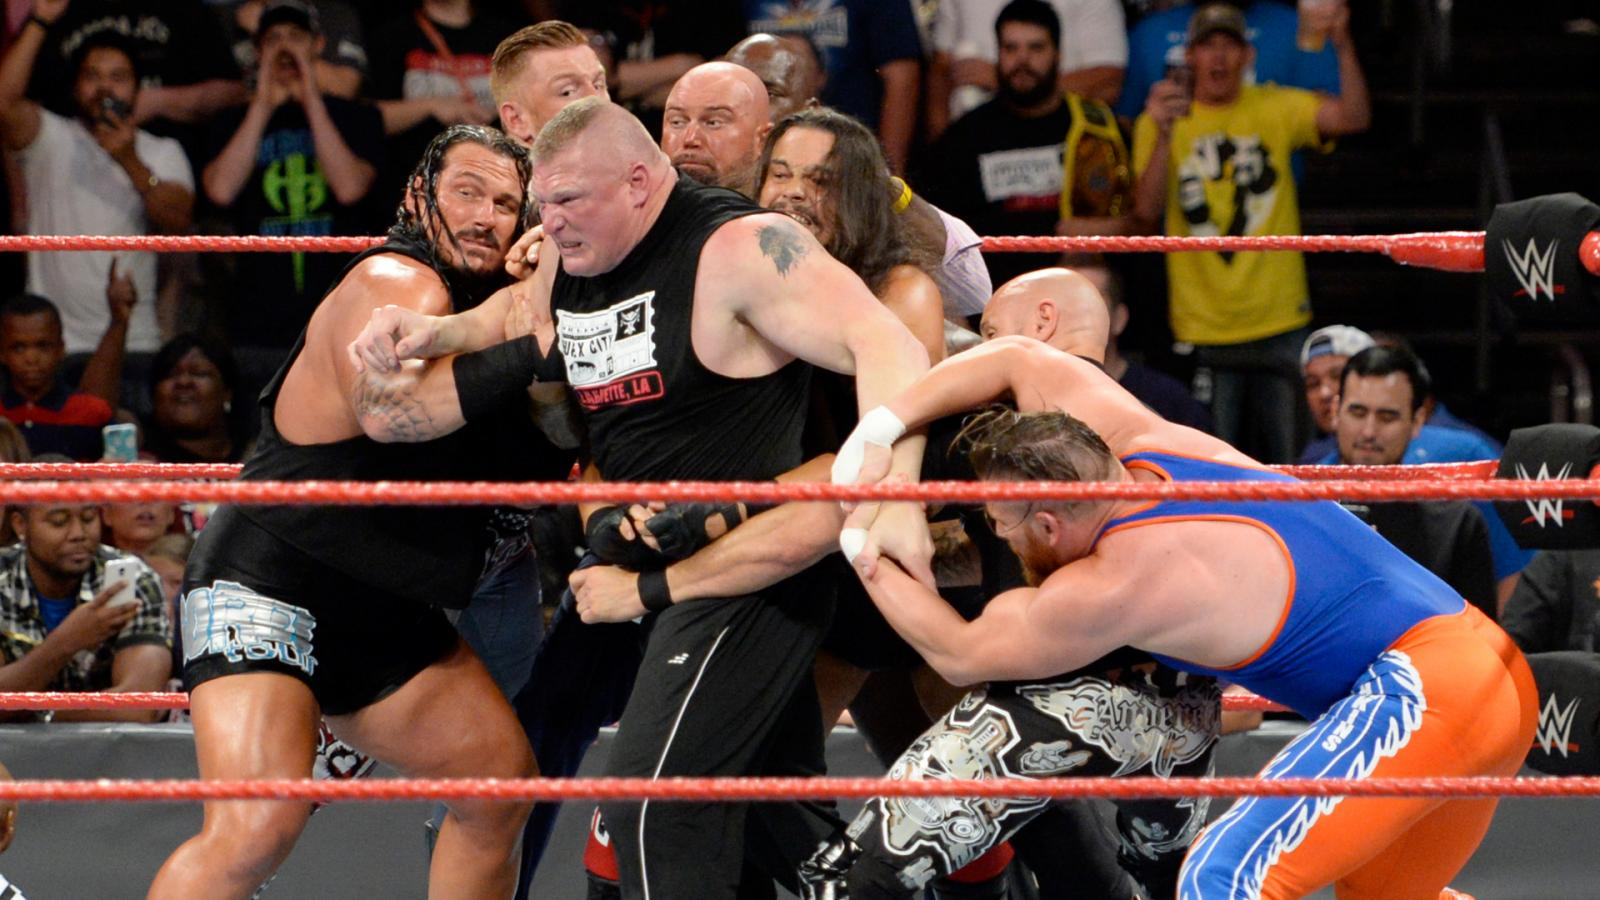 Last Week Samoa Joe Won A Fatal 5 Way Match At Extreme Rules And Now Hes Set To Challenge Brock Lesnar For The Universal Championship Great Balls Of